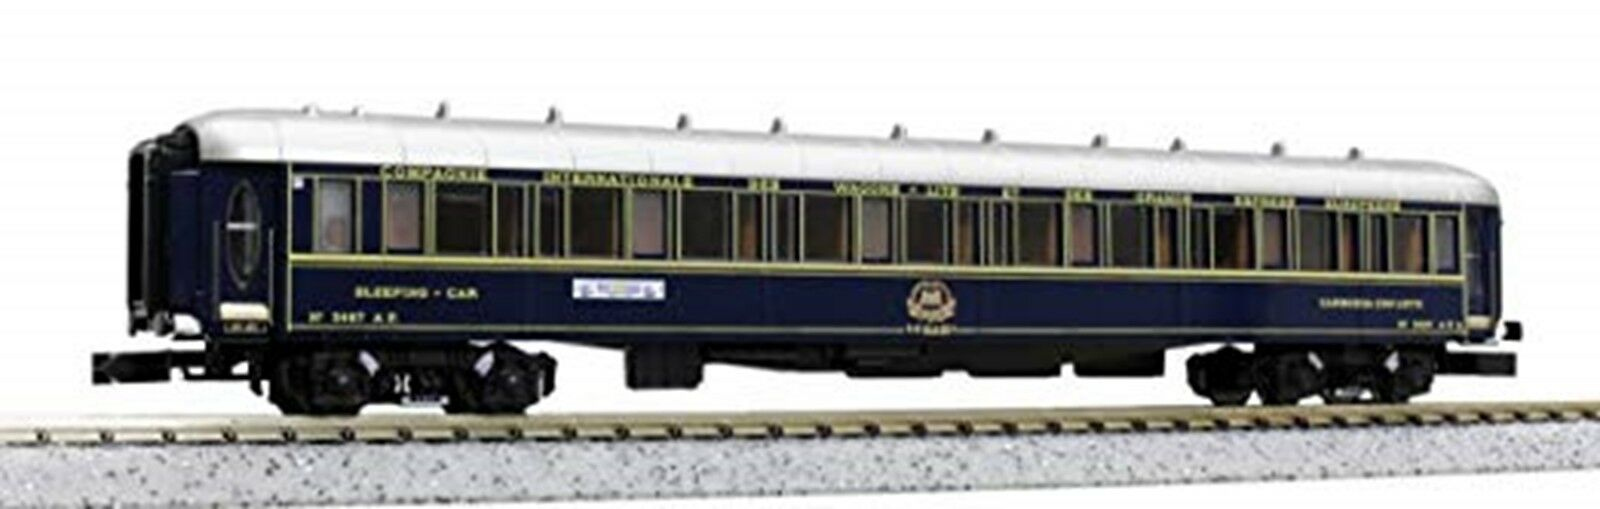 Kato 10-562 Orient Express '88 Passenger Coche 6-Coche Add-On Set JAPAN USED